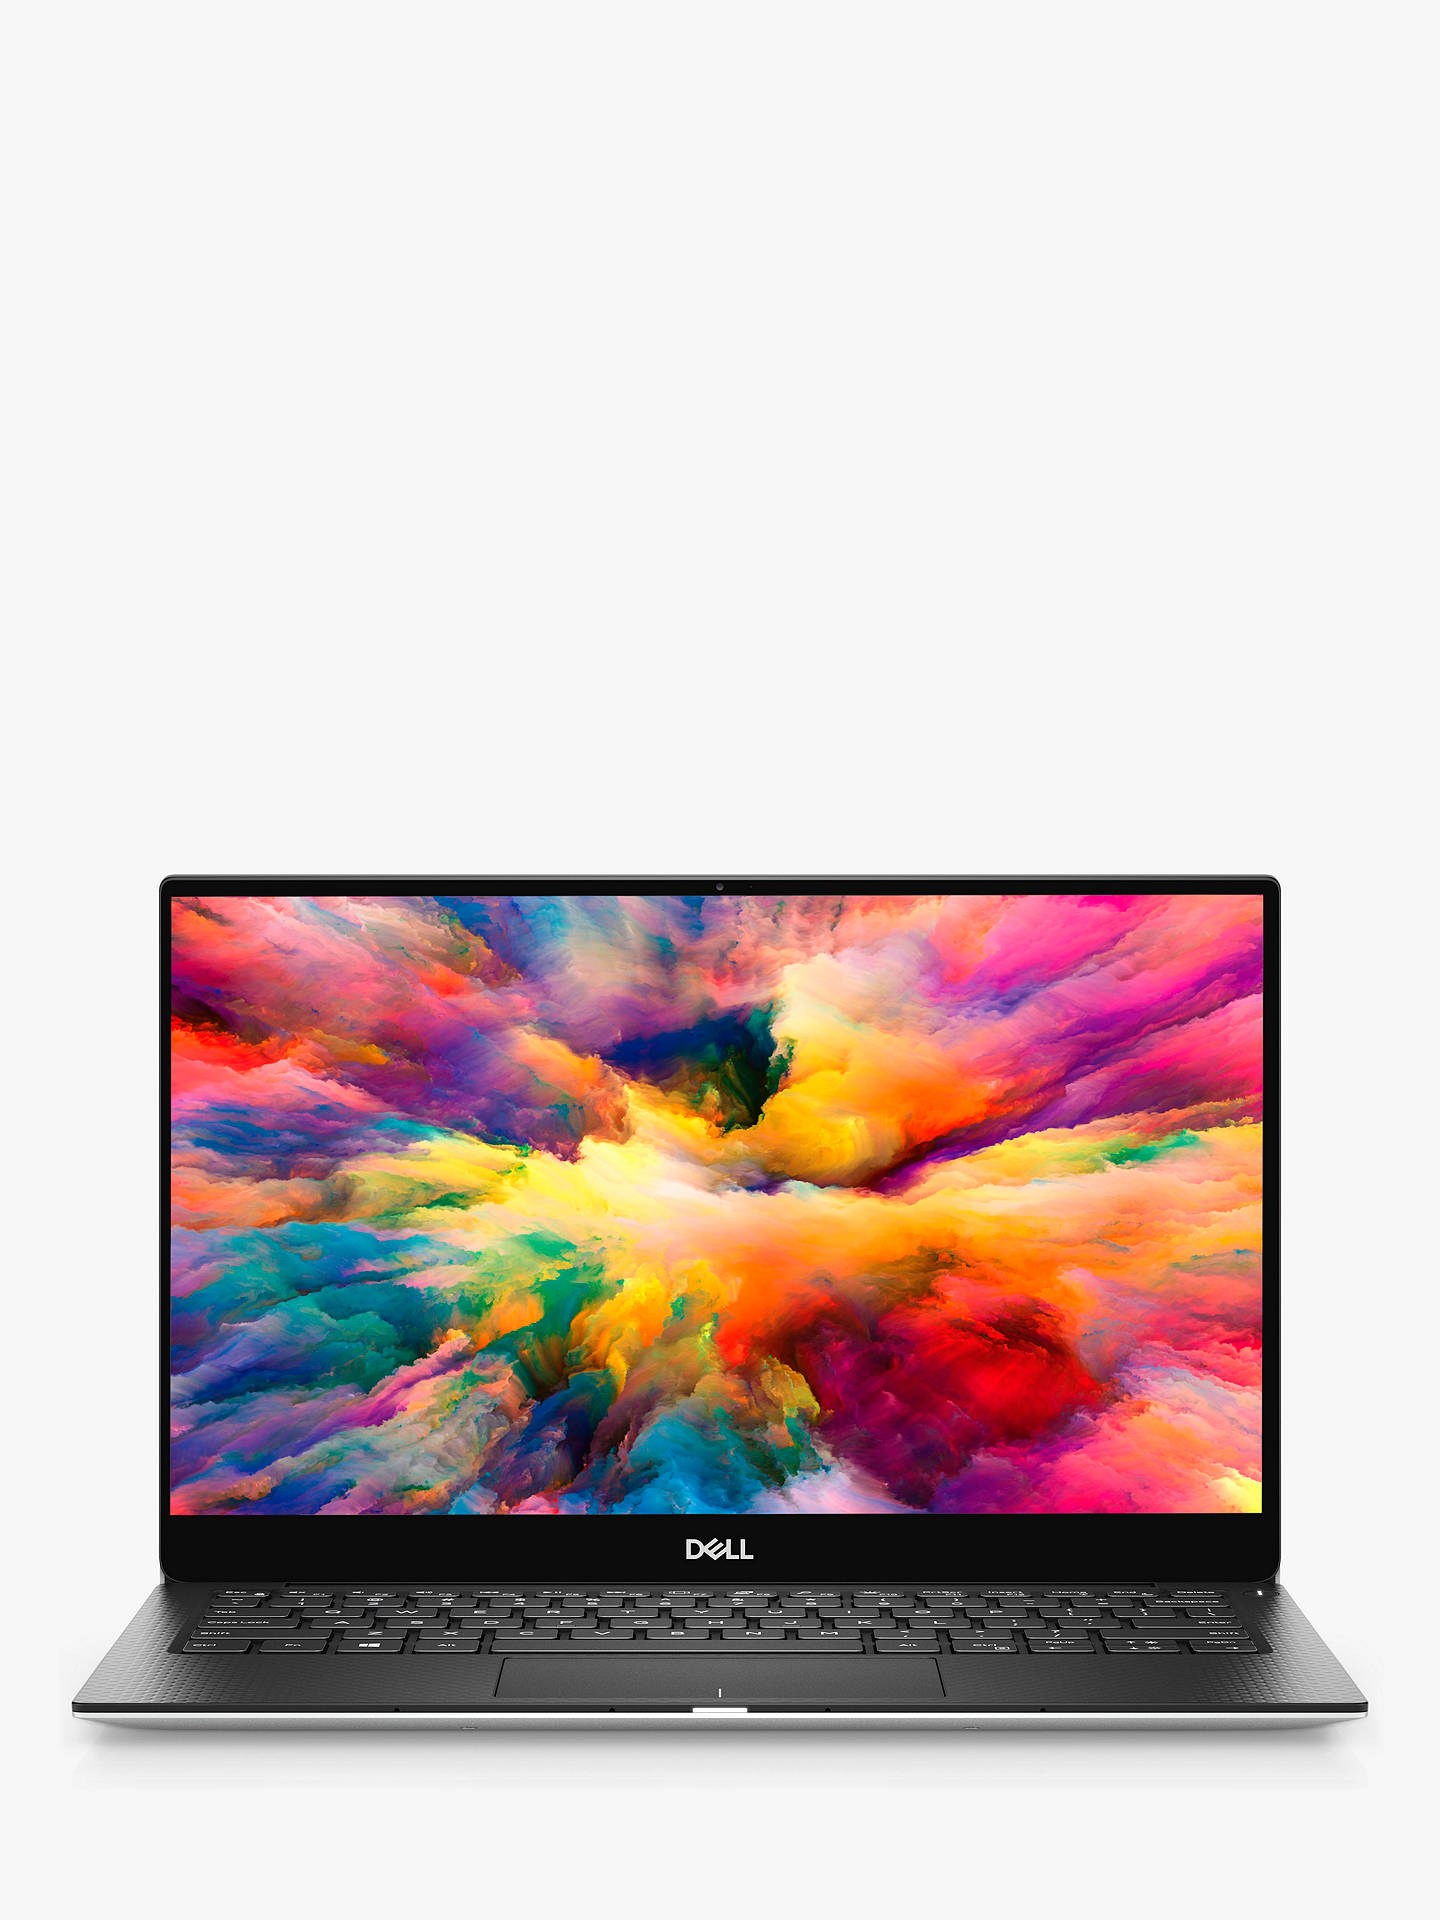 "Dell XPS 13 9380 Laptop, Intel Core i7 Processor, 8GB RAM, 256GB SSD, 13 3""  Full HD, Silver"